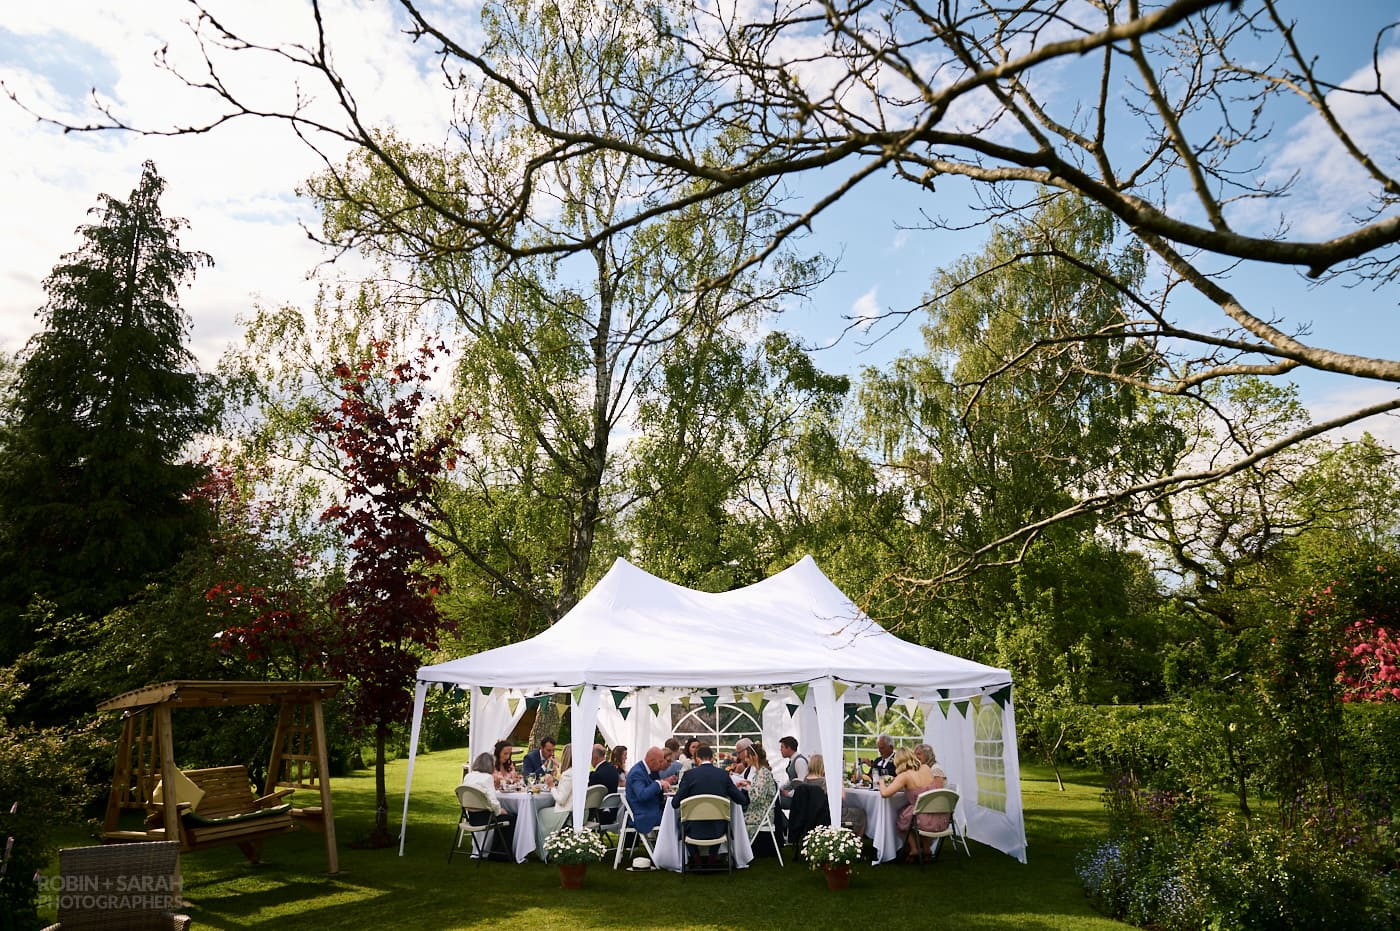 Small marquee set up for garden wedding with guests eating